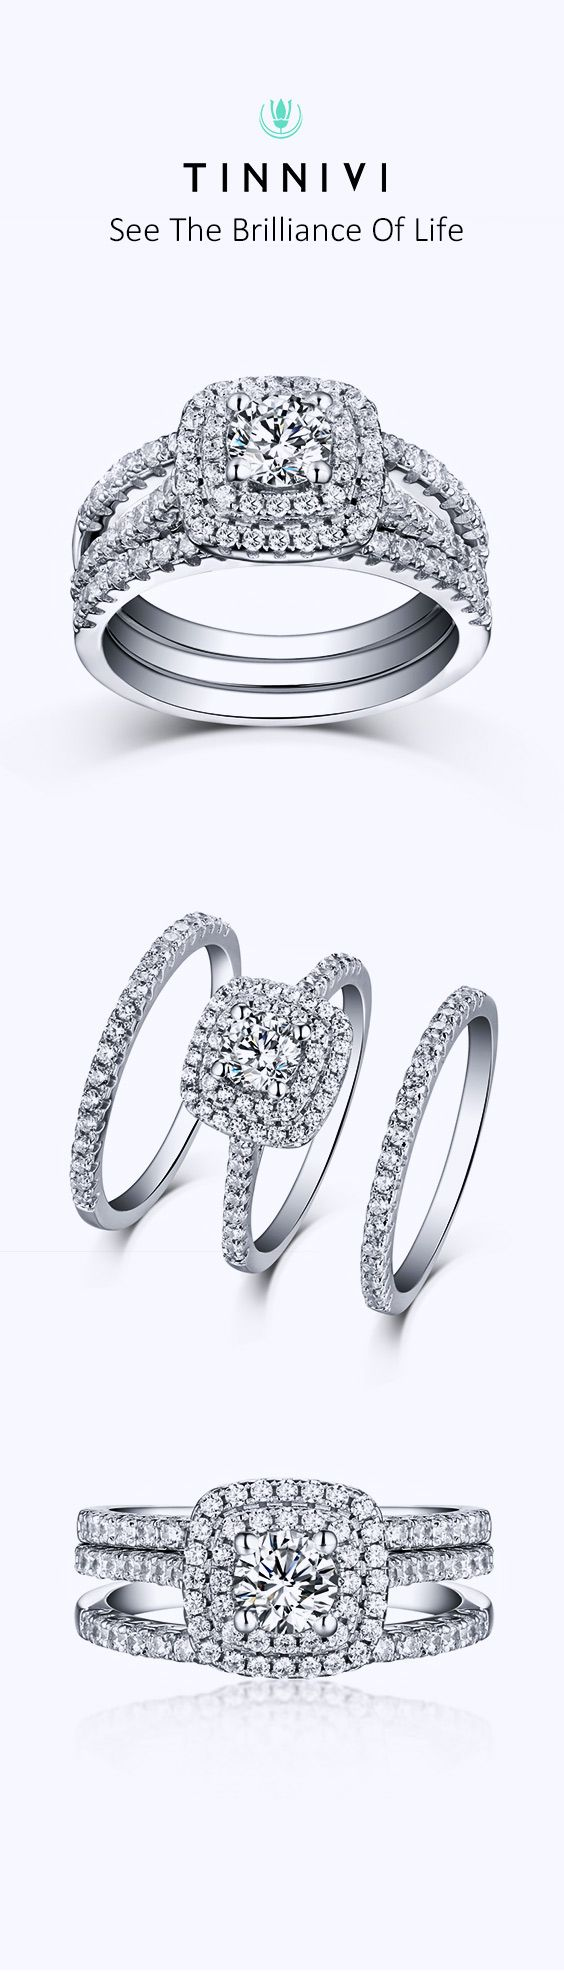 Shop Tinnivi Sterling Sliver Round Cut Created White Sapphire Double Halo 3 Piece Wedding Ring Set online, Tinnivi Jewelry creates quality fine jewelry at gorgeous prices. Shop now!